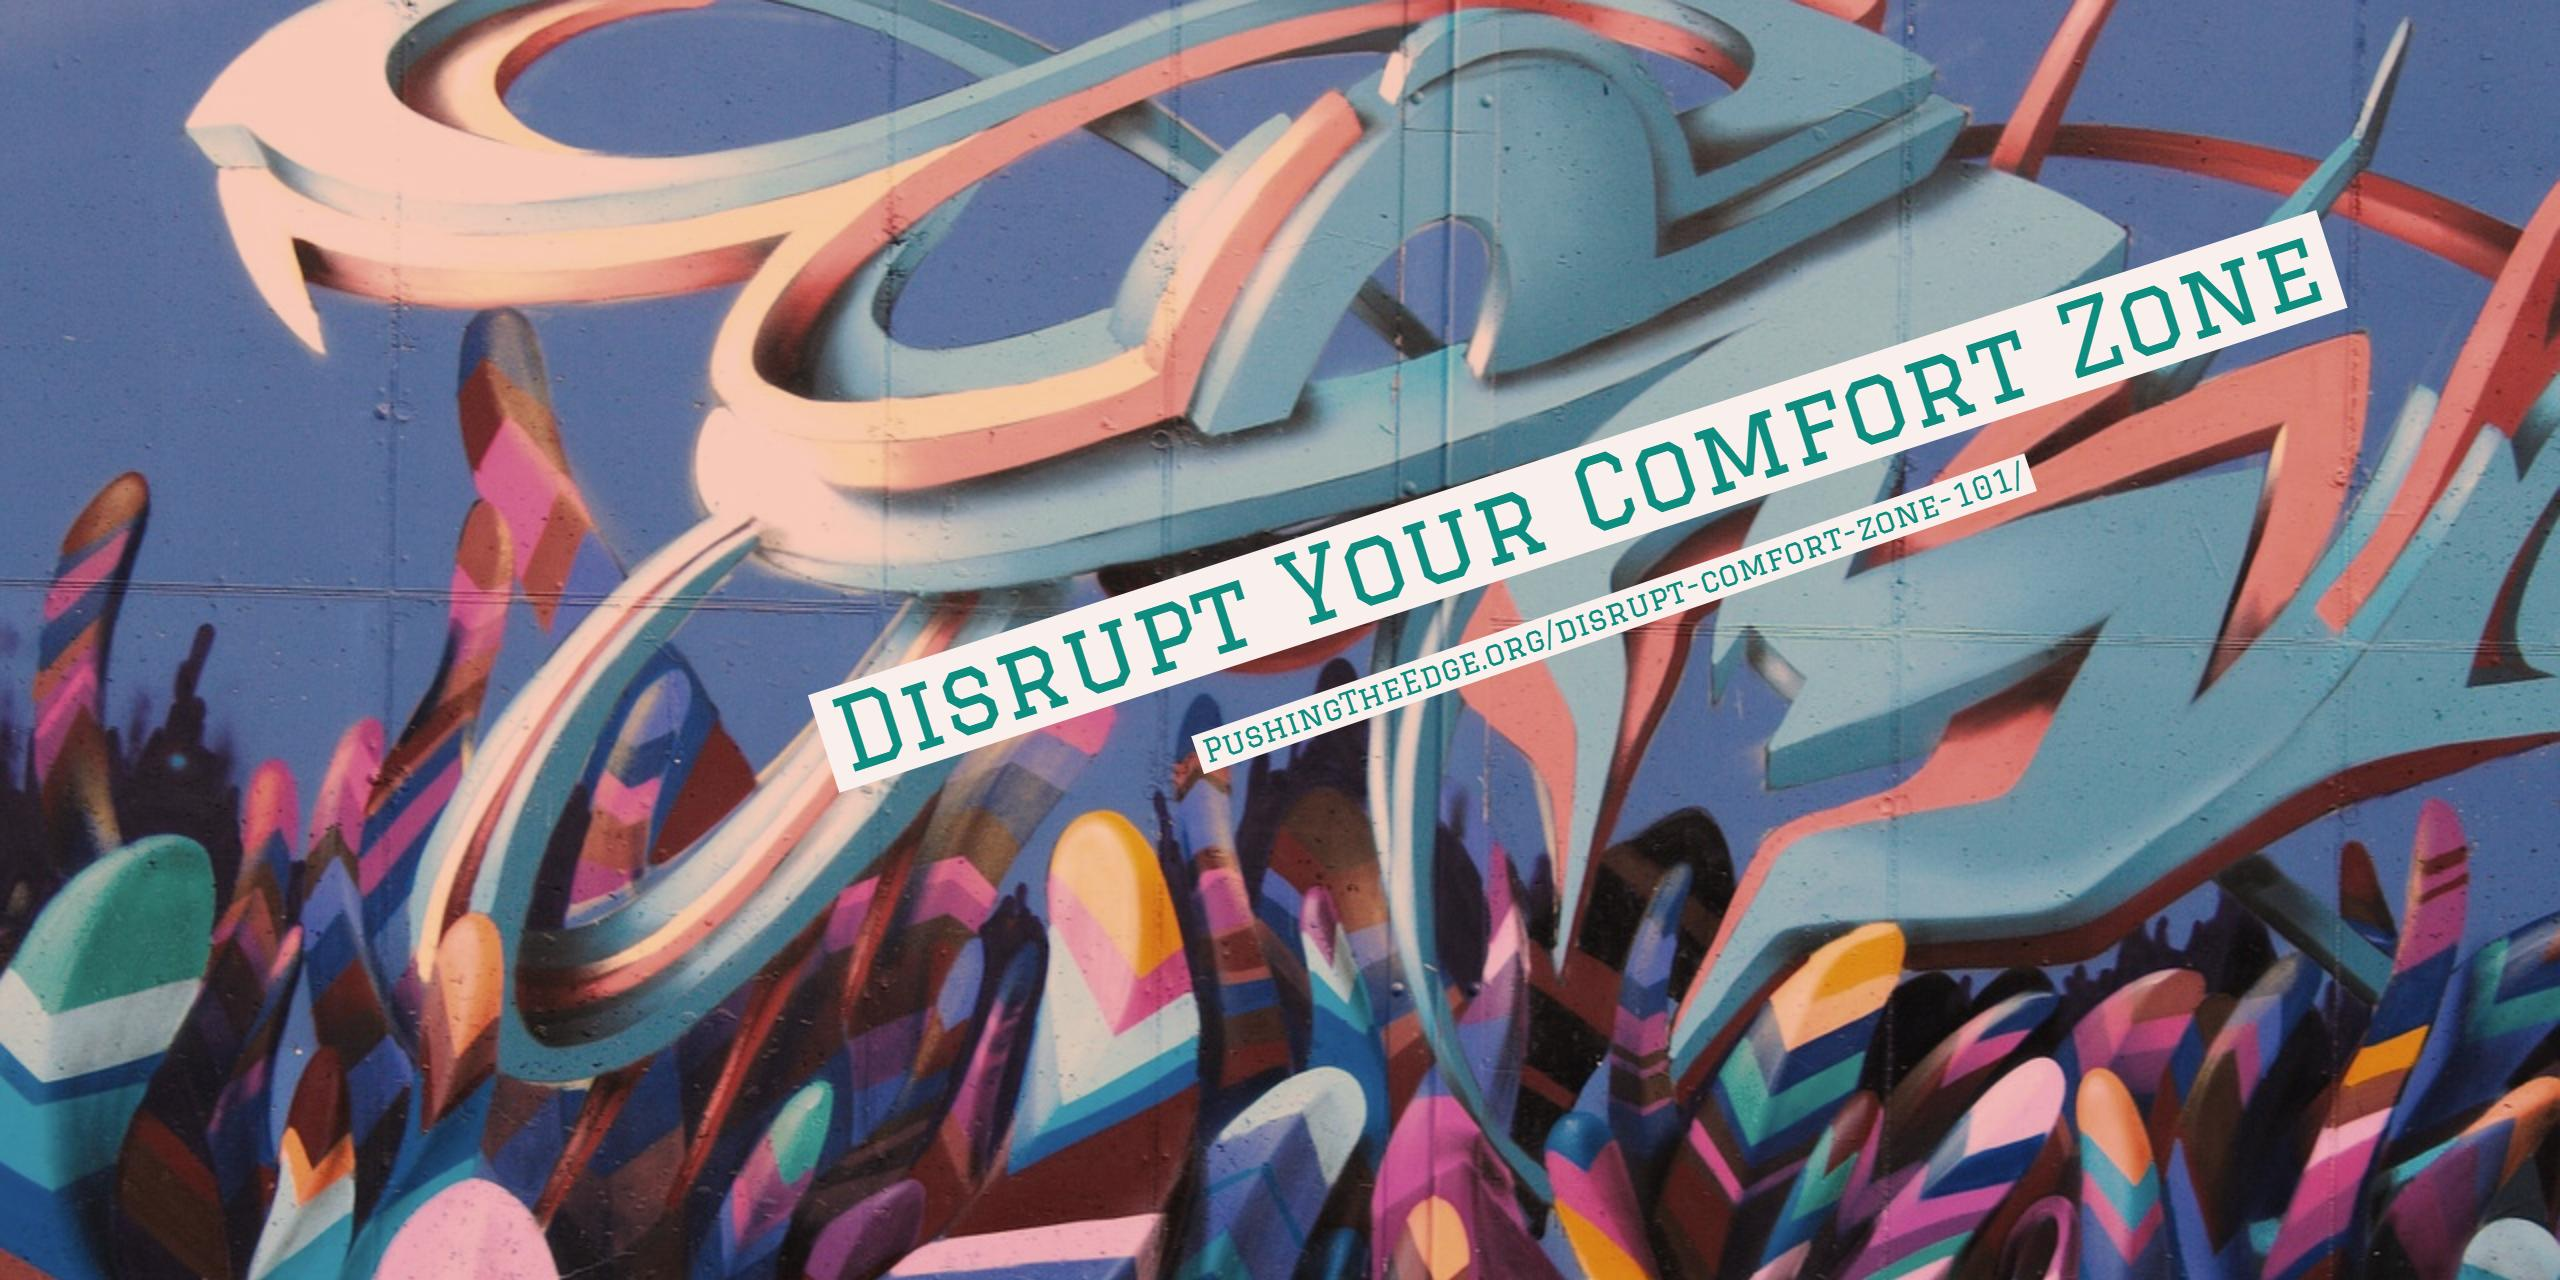 Disrupt Your Comfort Zone